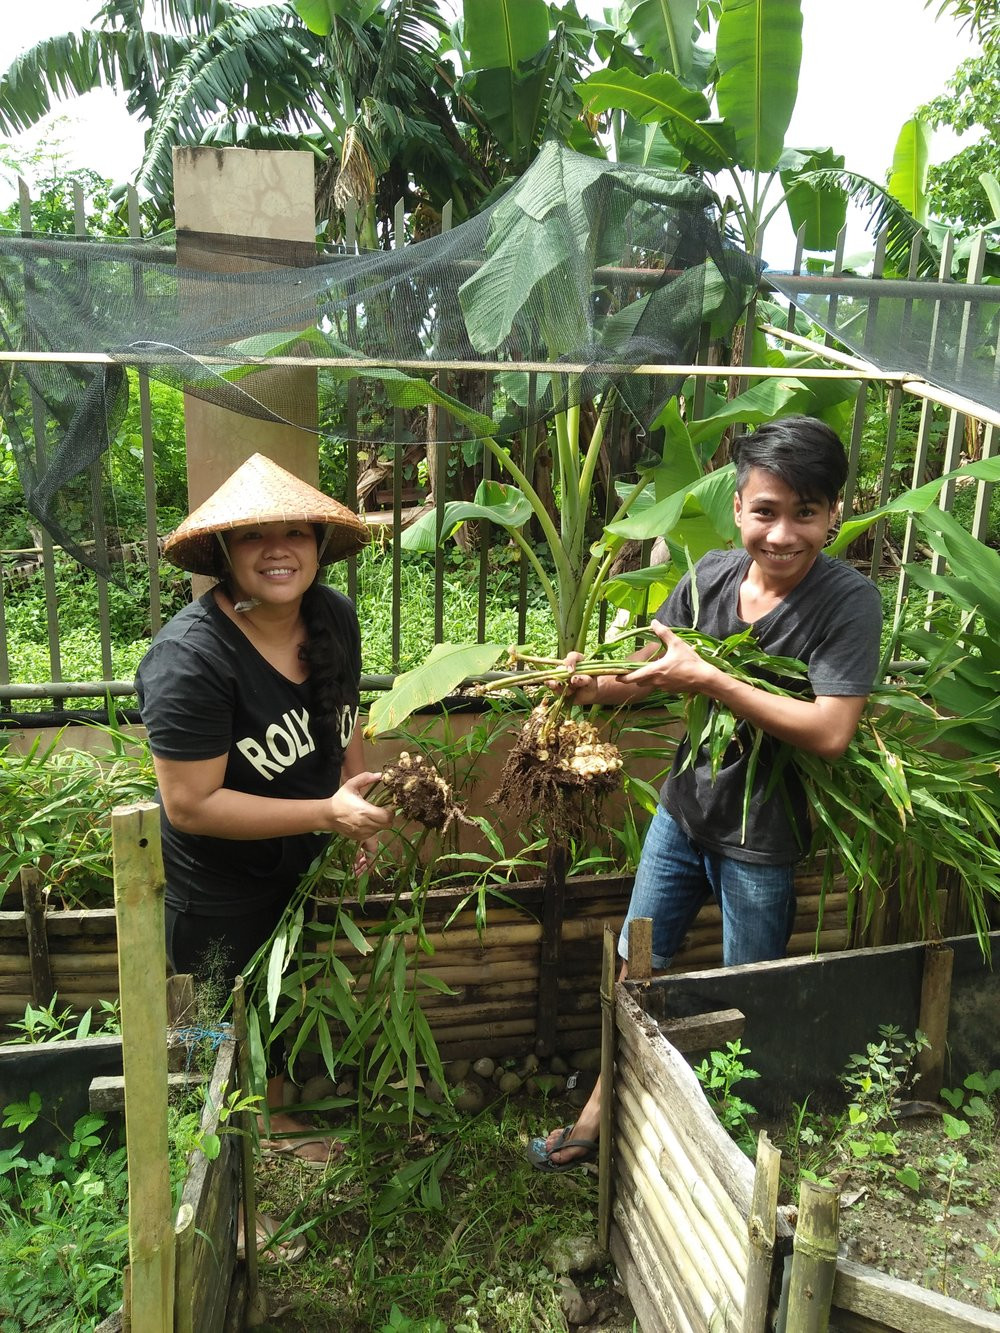 Food Production Intern, Jairus Tumamak, works with Rina Miller to weed the raised garden beds at Tahanan. There are currently 400 sq ft of garden beds at Tahanan producing a variety of table vegetables including peppers, green beans, leafy greens, okra, garlic, ginger and more.